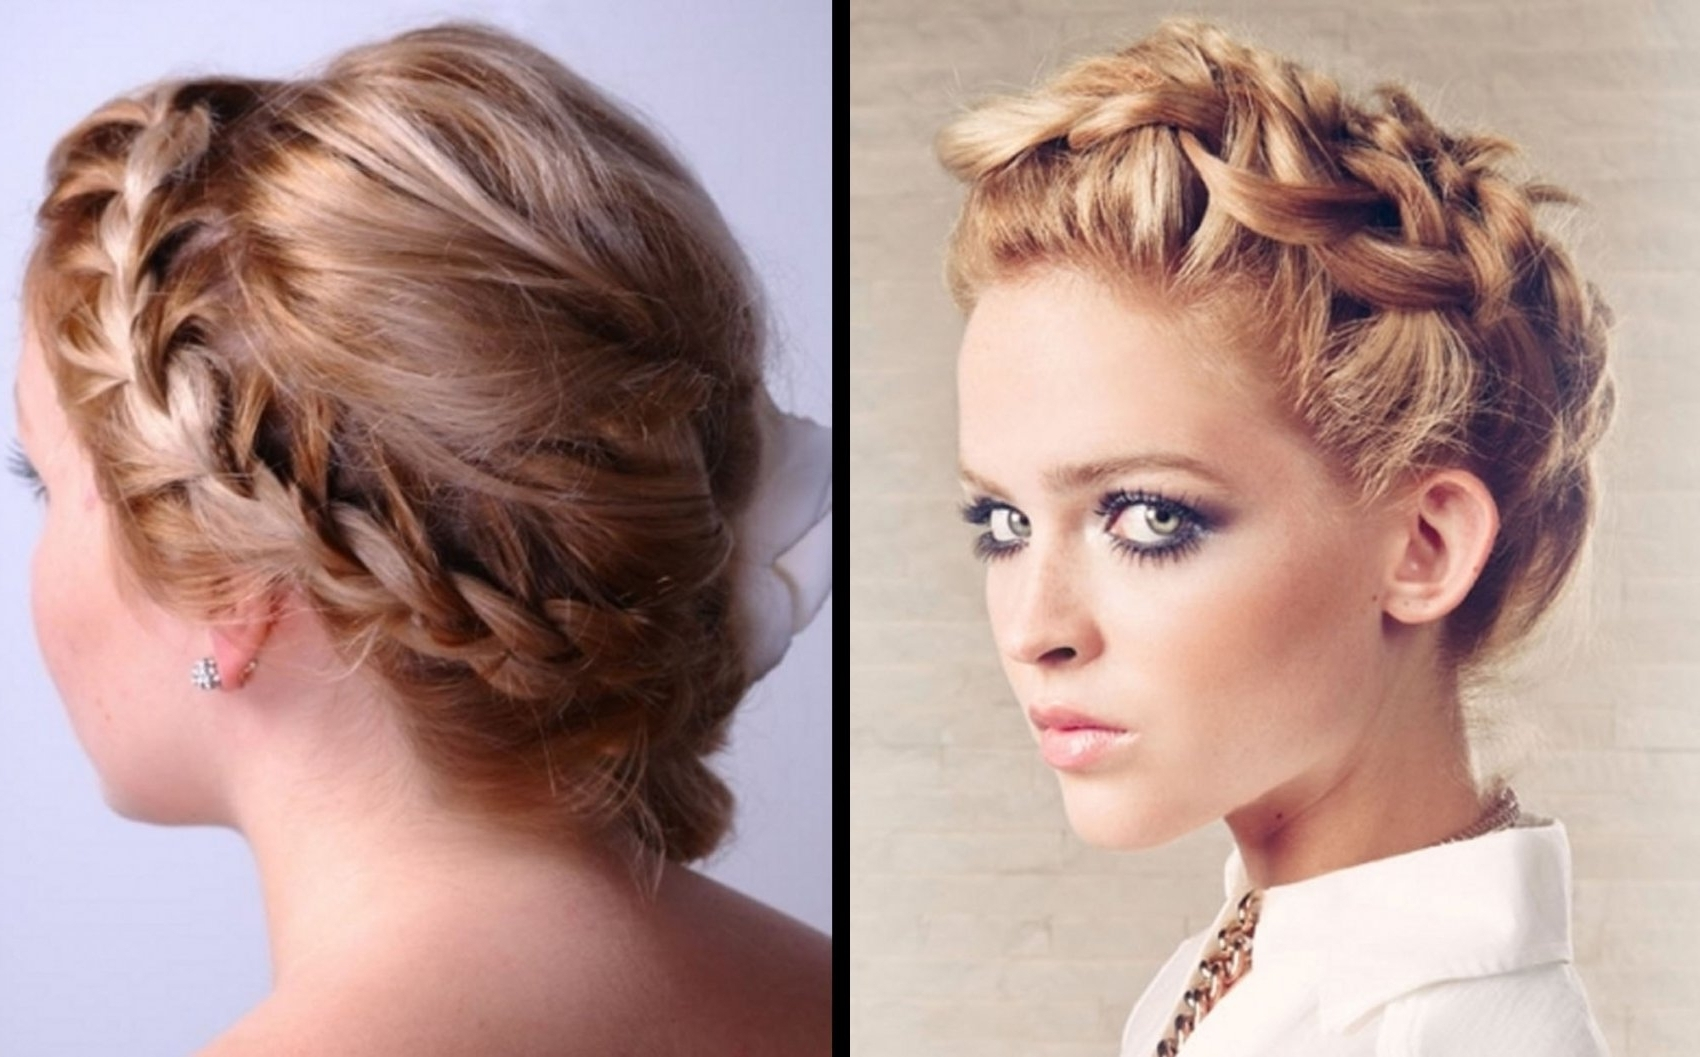 Elegant Updo Hairstyles For Short Hair 90 Ideas With Updo | Best With Regard To Cool Updo Hairstyles (View 6 of 15)